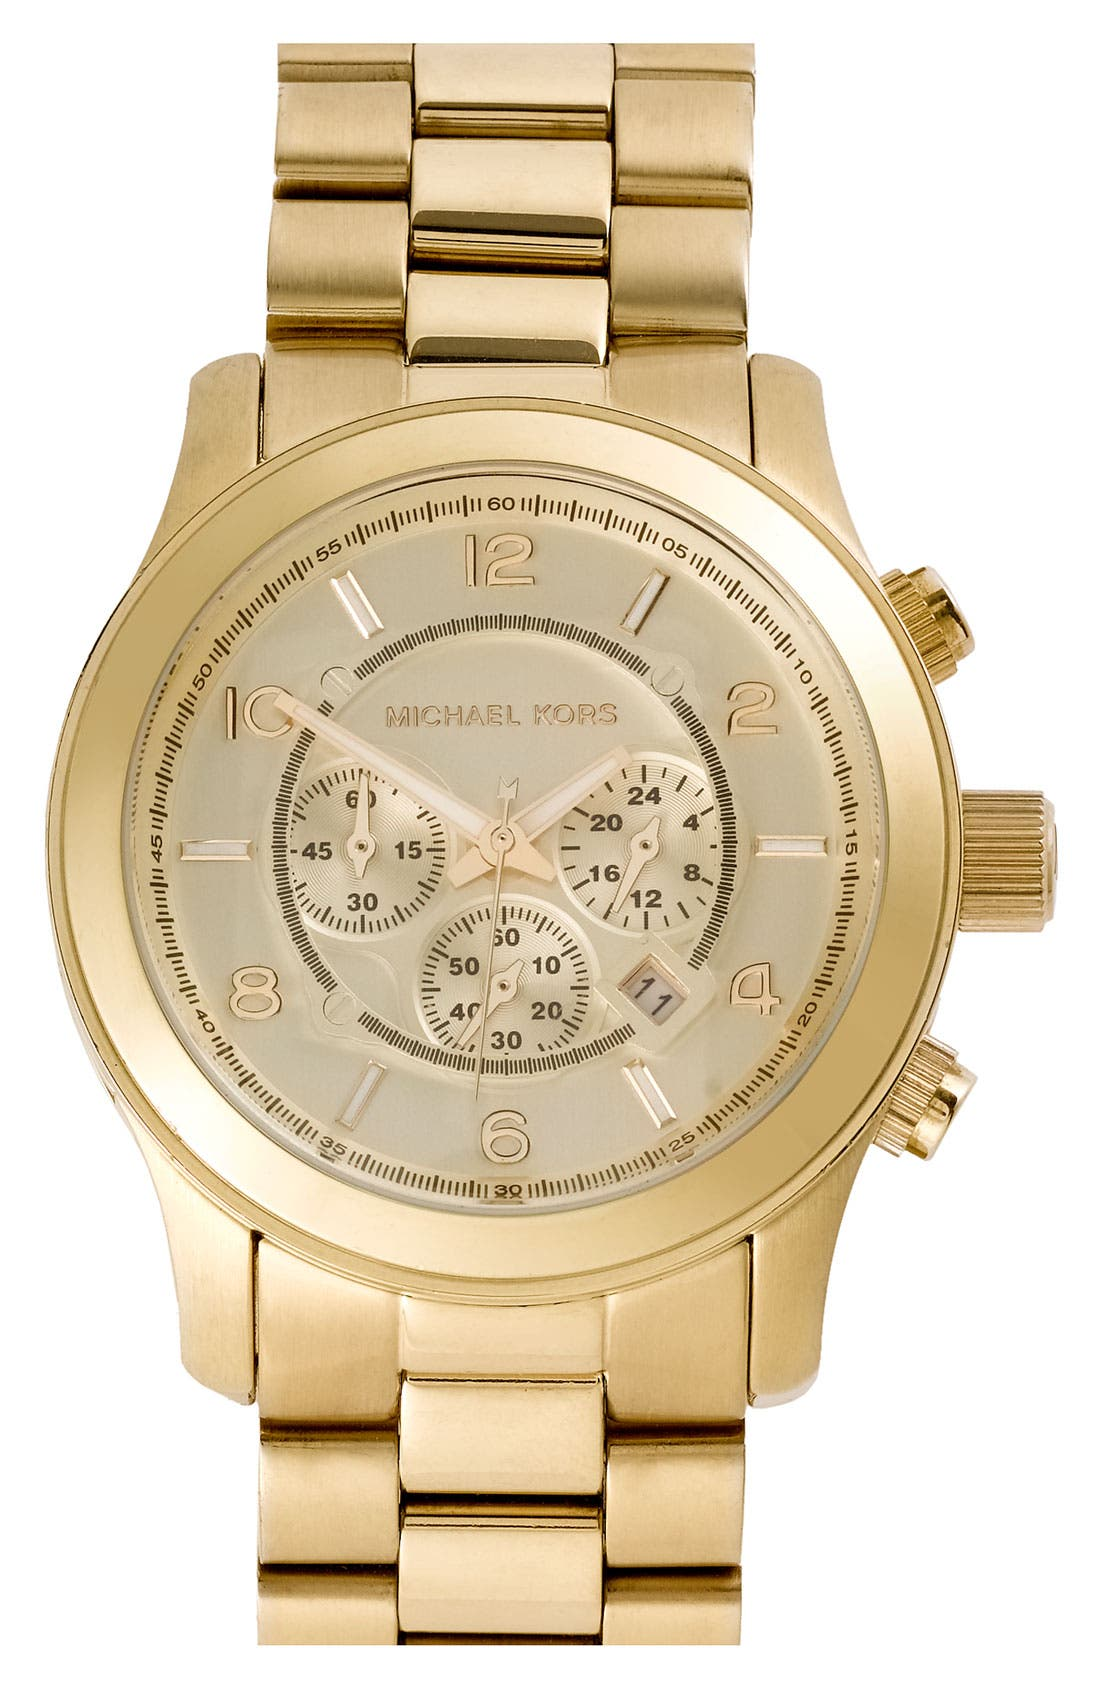 MICHAEL KORS Large Runway Chronograph Bracelet Watch, 45mm